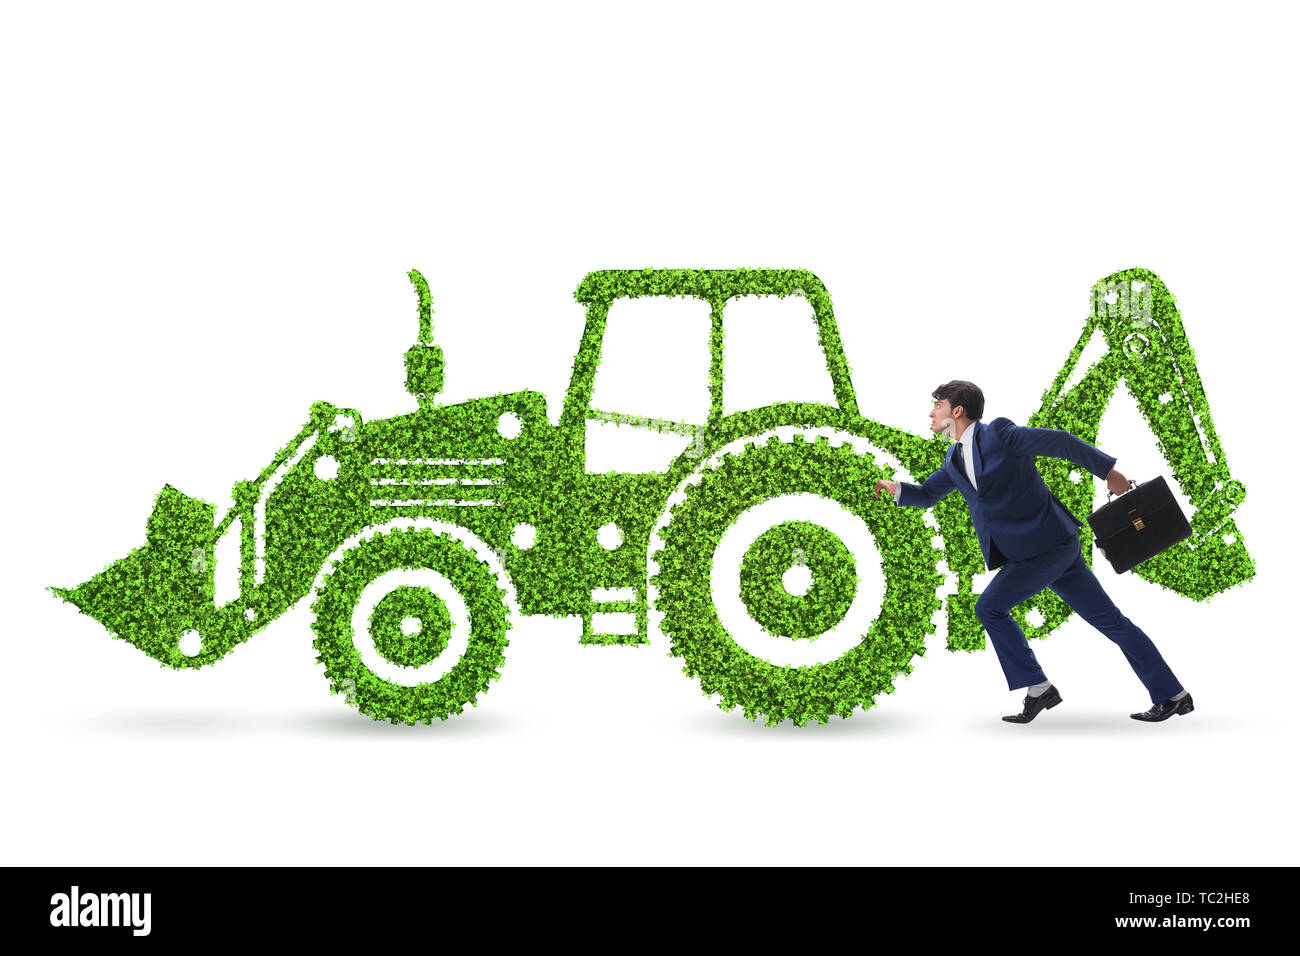 Green environmentally friendly vehicle concept - Stock Image